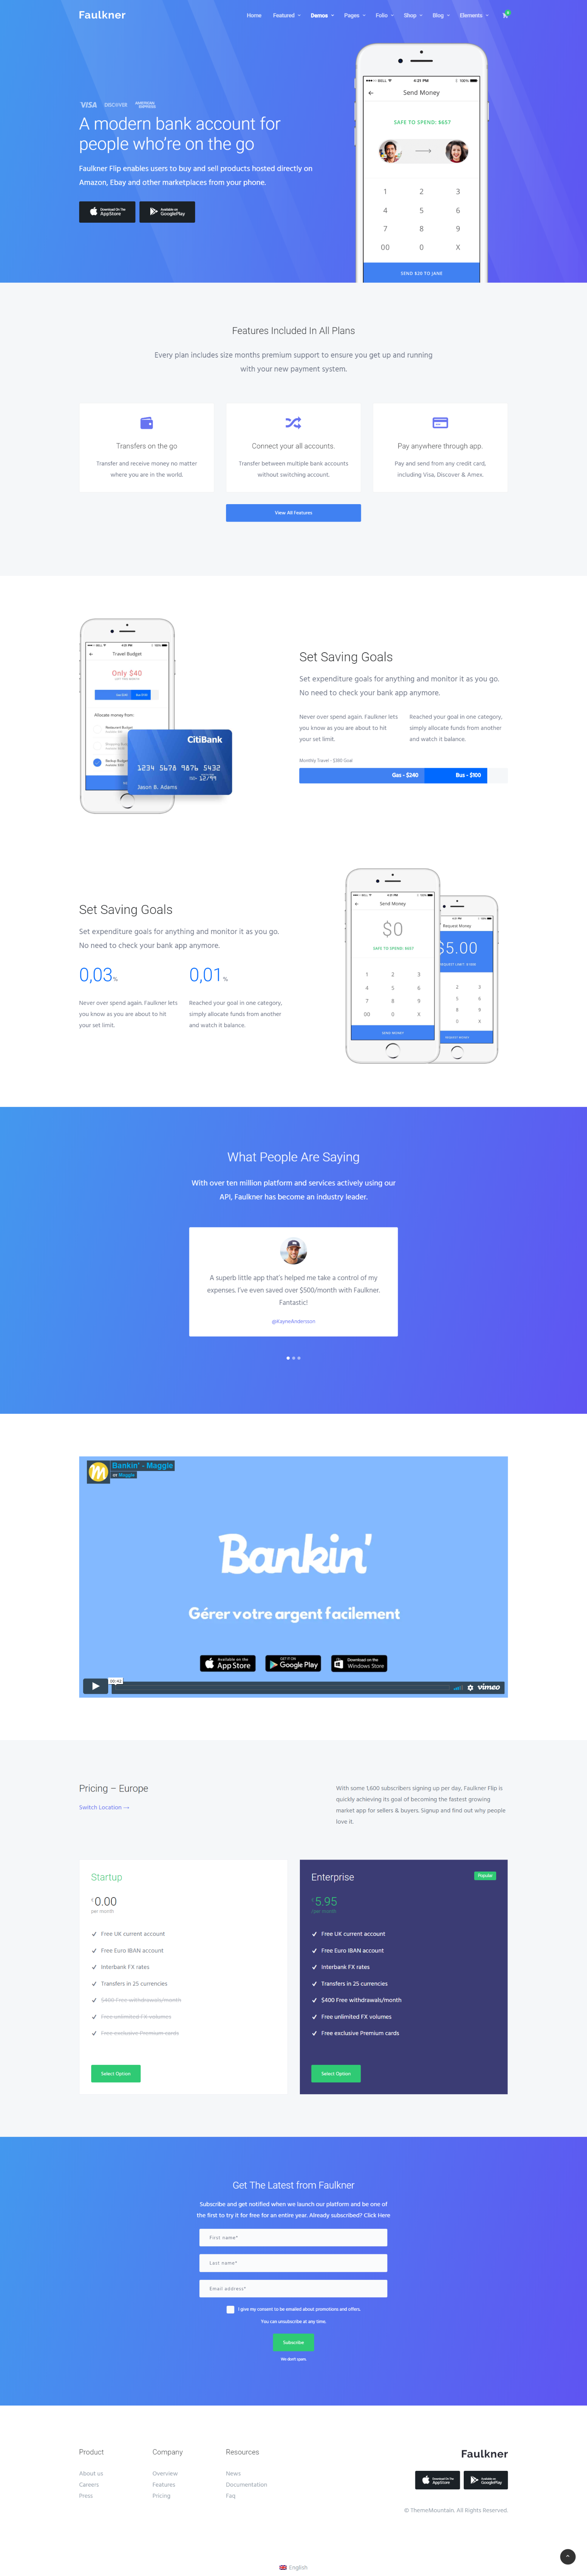 Top 10 Modern Stylish Trendy Wordpress Themes For A New Startup Company Modern Wordpress Themes Startup Design Blogging Guidelines